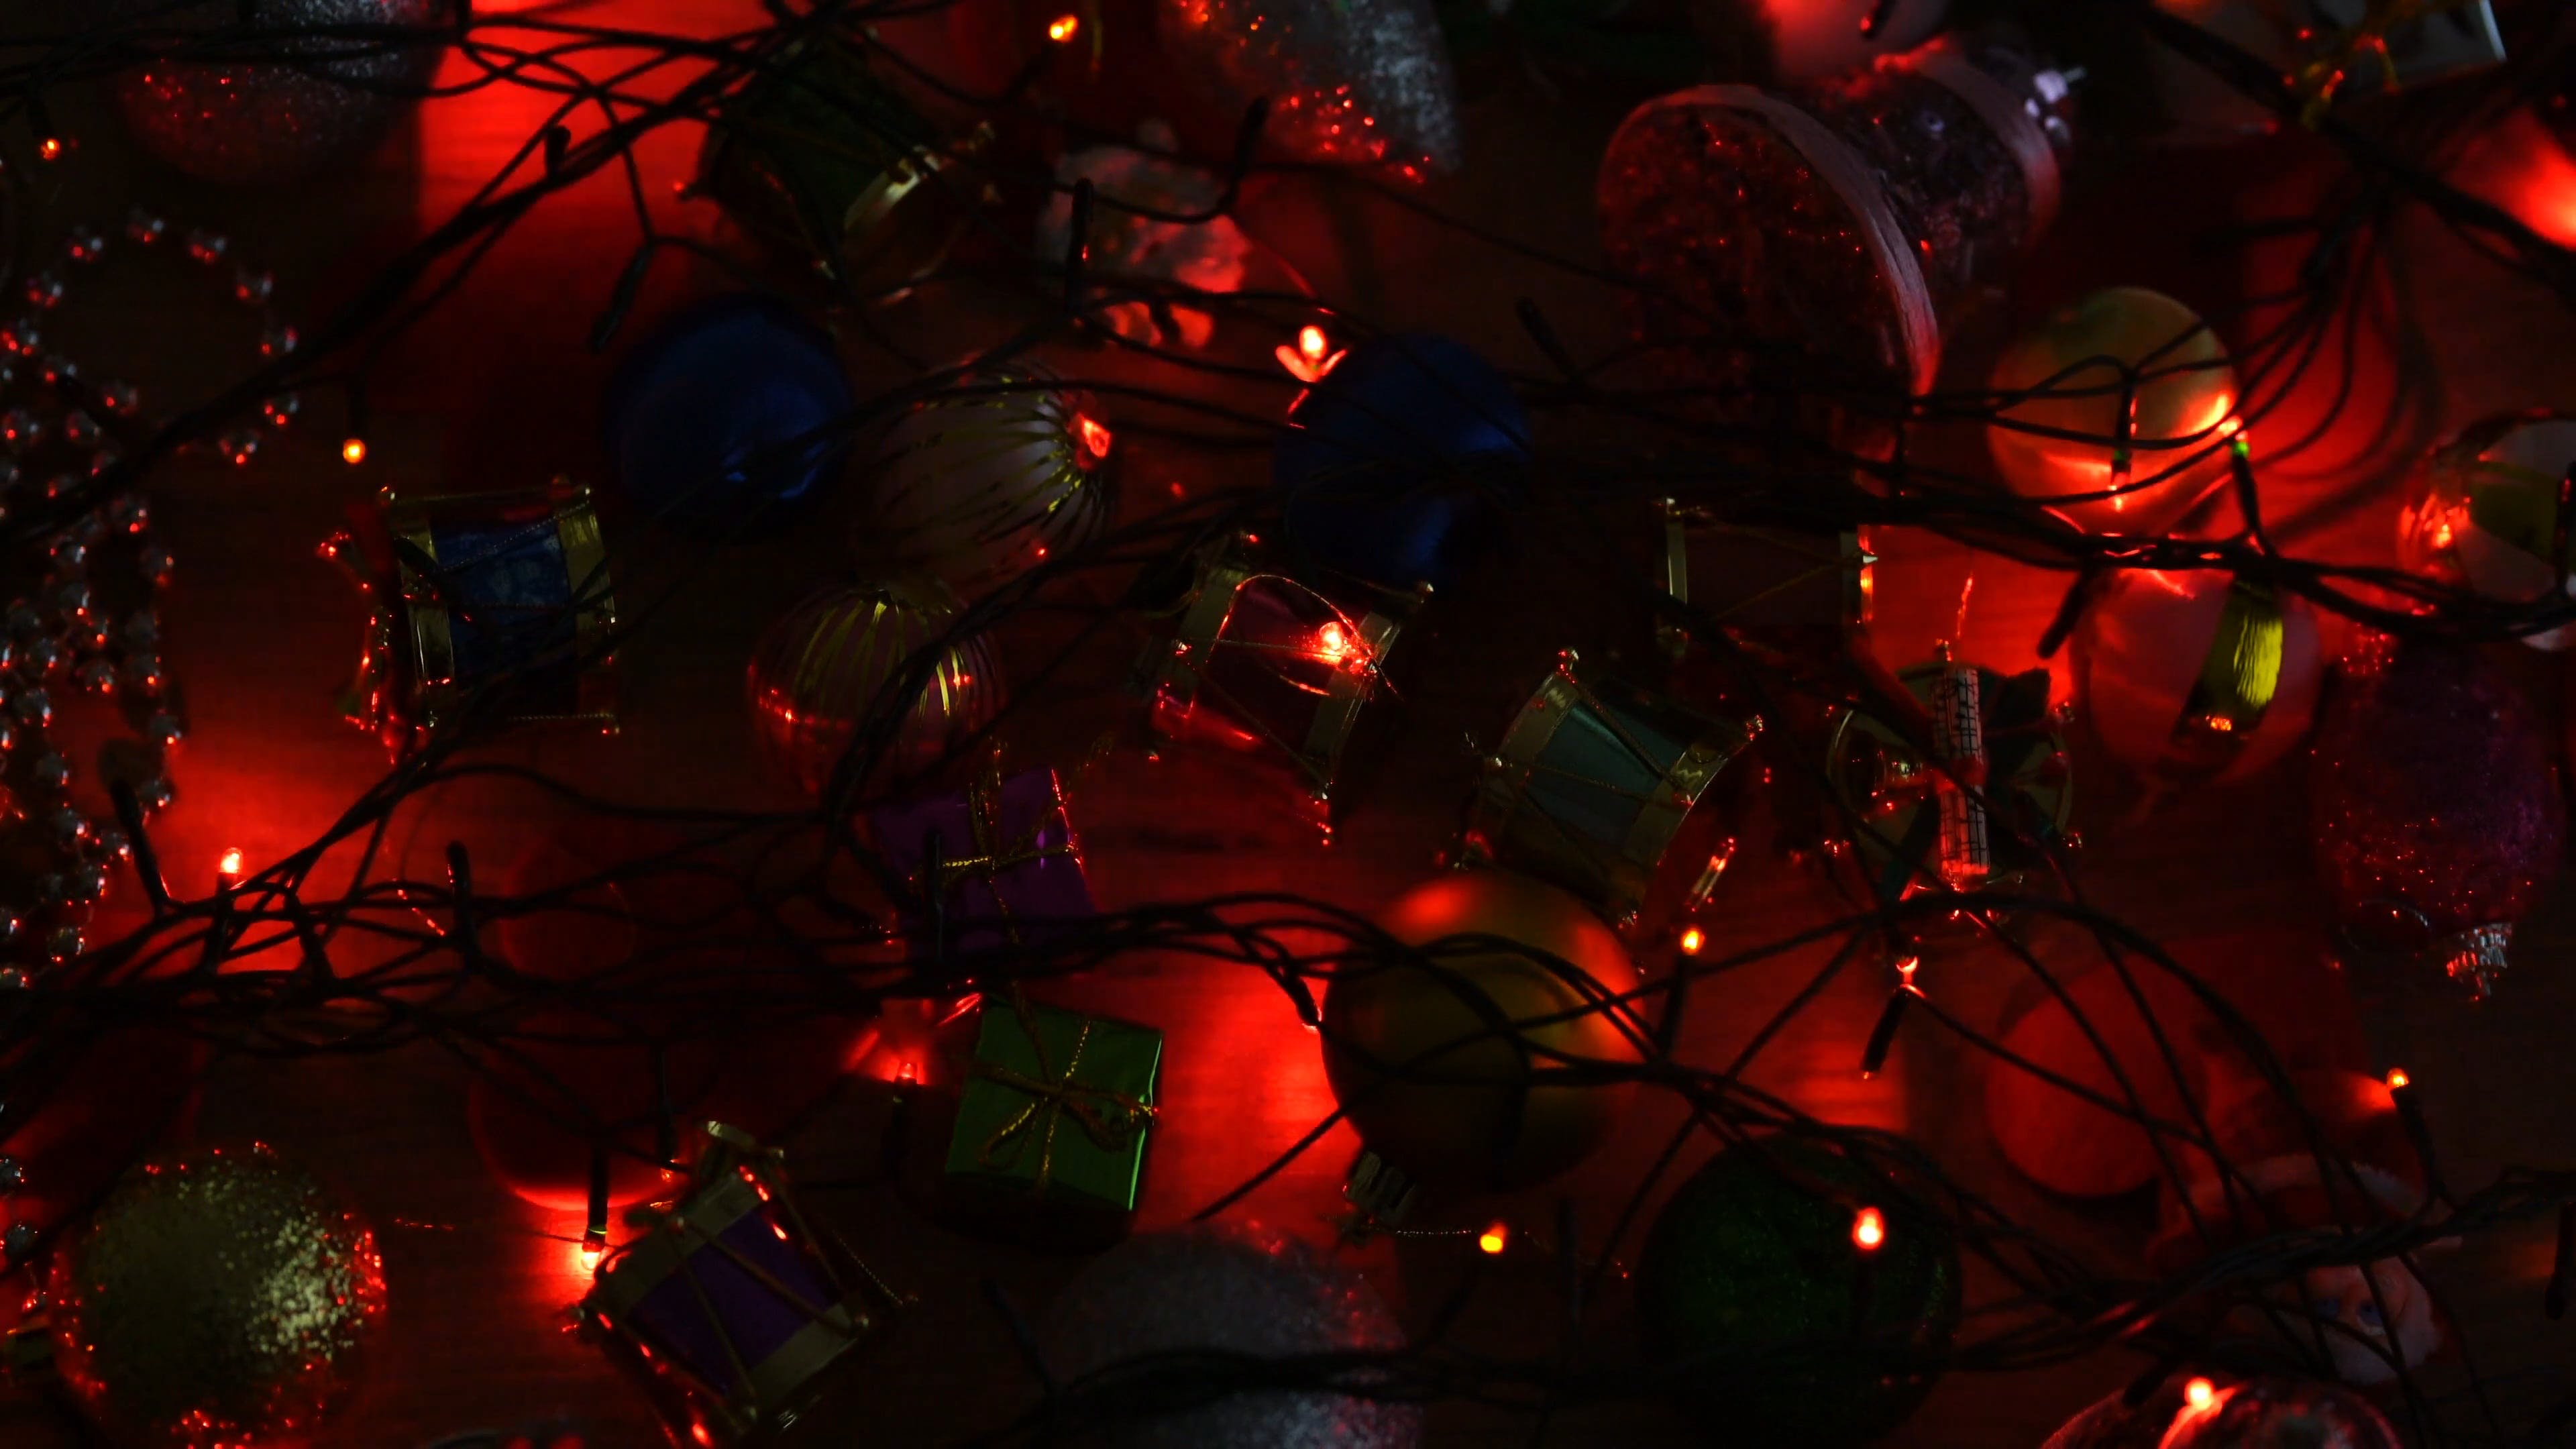 Christmas Ornaments And Dancing Lights